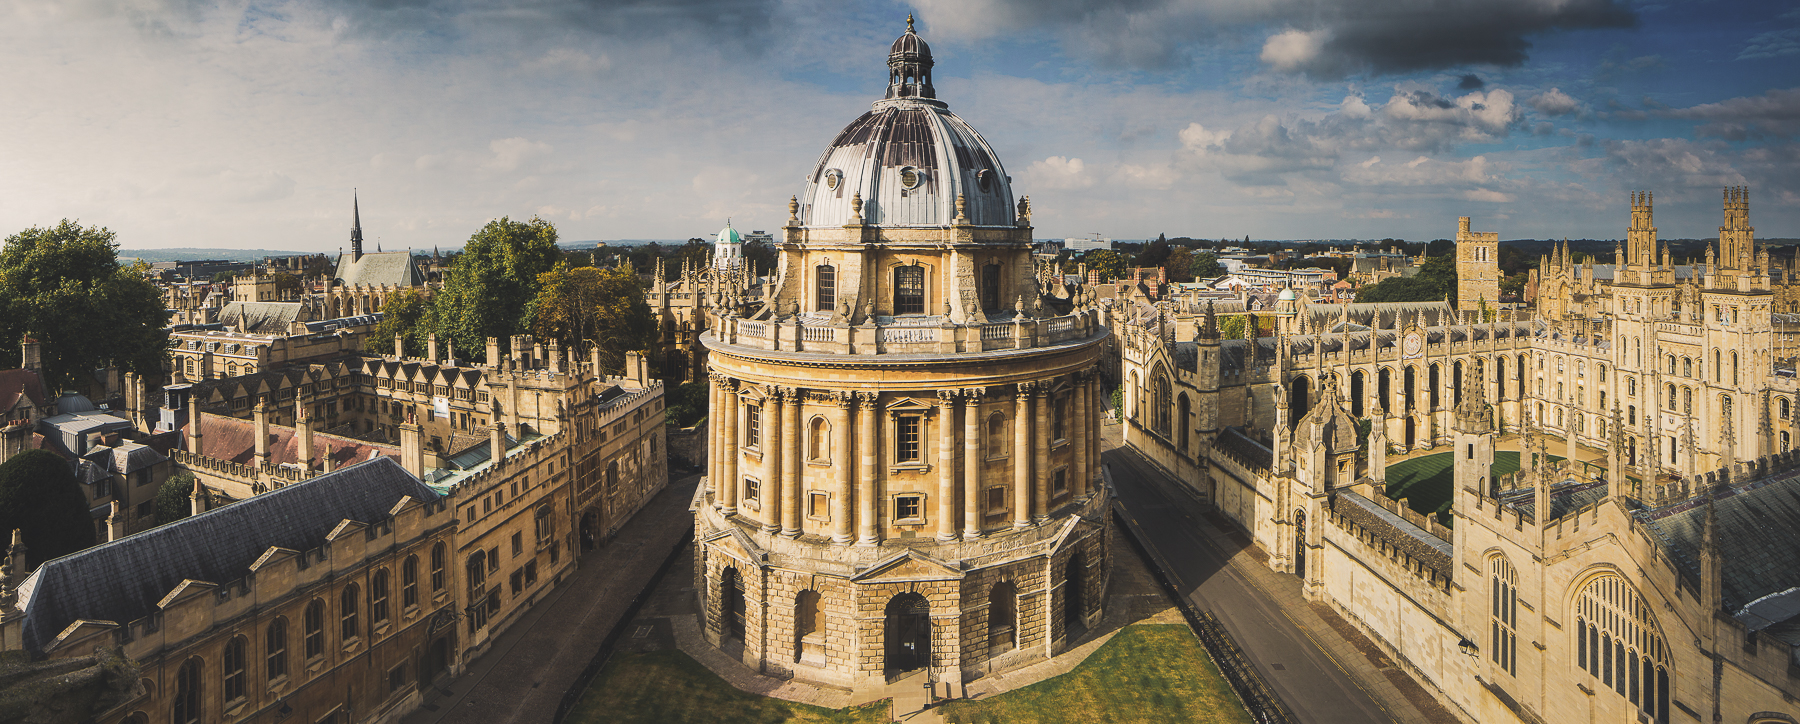 Photograph of the Bodleian Librabry